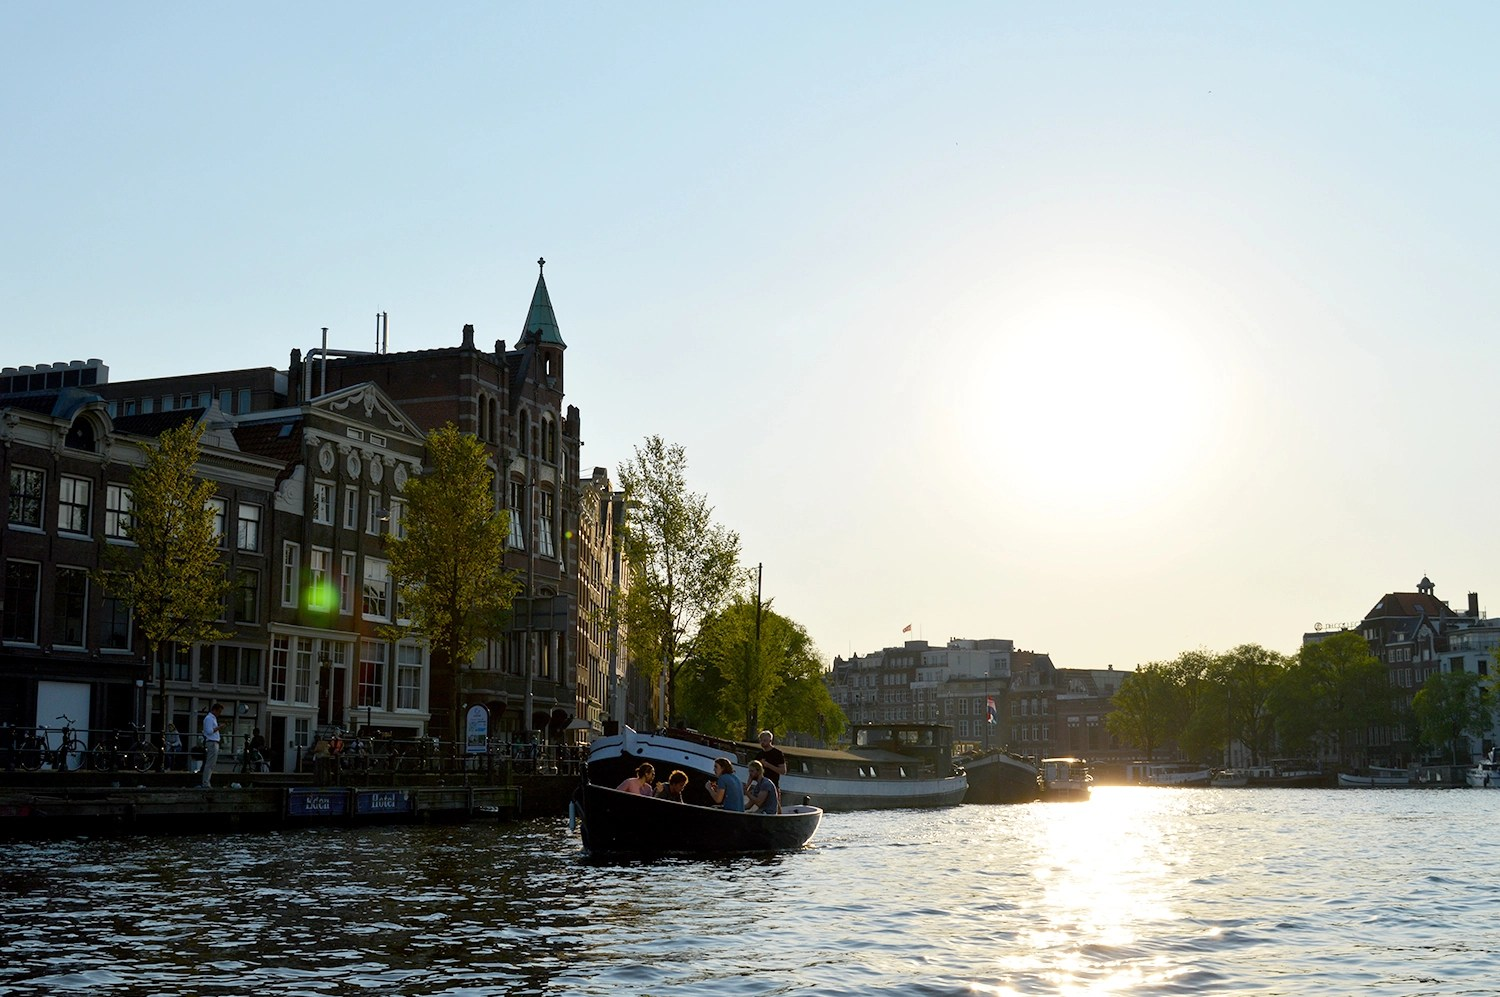 Karl & Daan enjoying the summer on the Amstel River | | Gay Couple Rental Canal Boat Tour Amsterdam © CoupleofMen.com